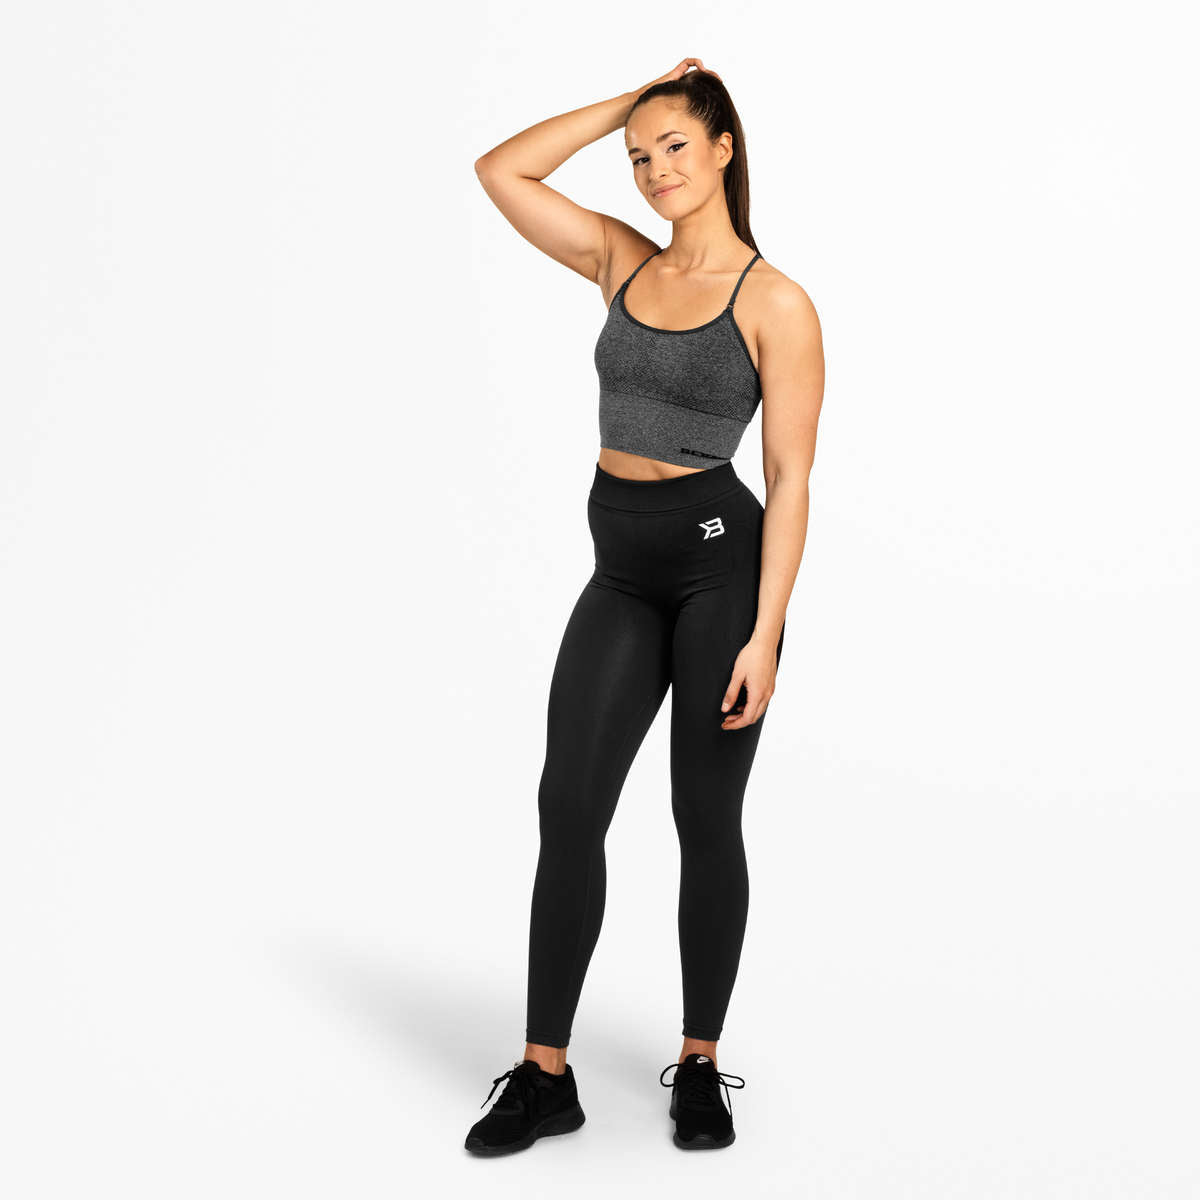 BETTER BODIES – ASTORIA SEAMLESS TOP GRAPHITE